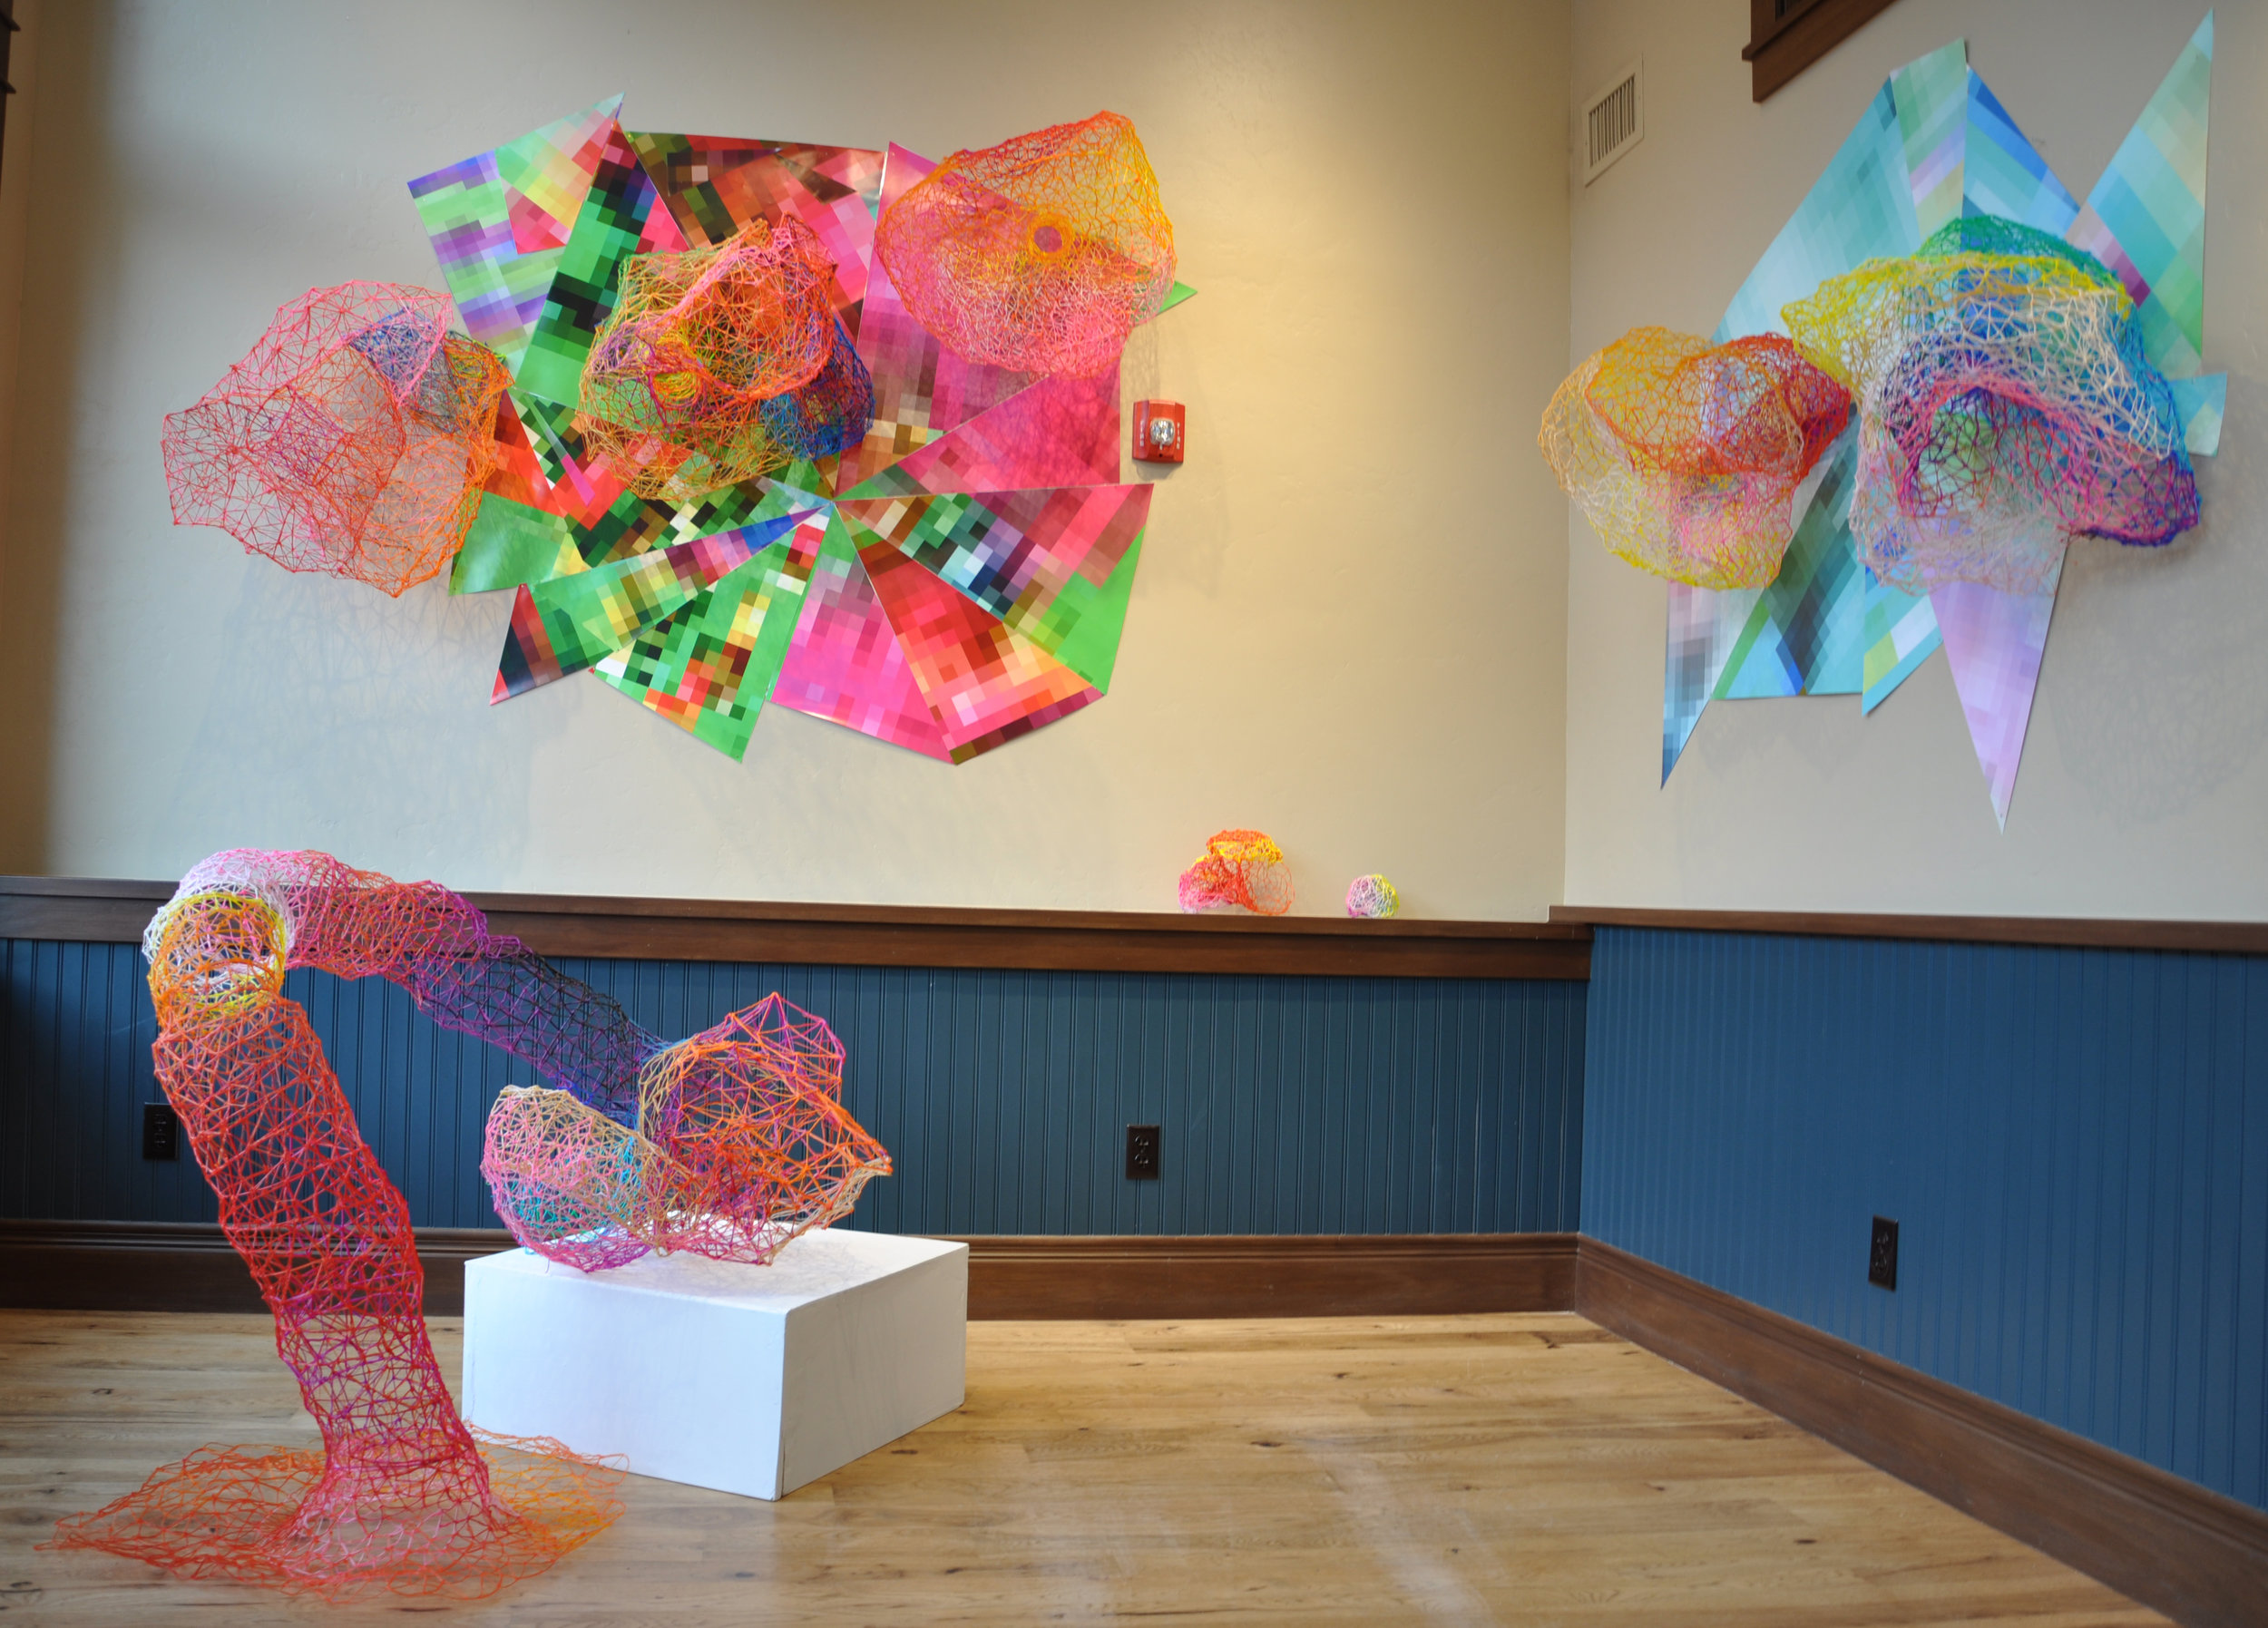 Exhibition view 'Forma Futura' at The Old Masonic Hall, Breckenridge, Winter 2016 with Jennifer Ghormley